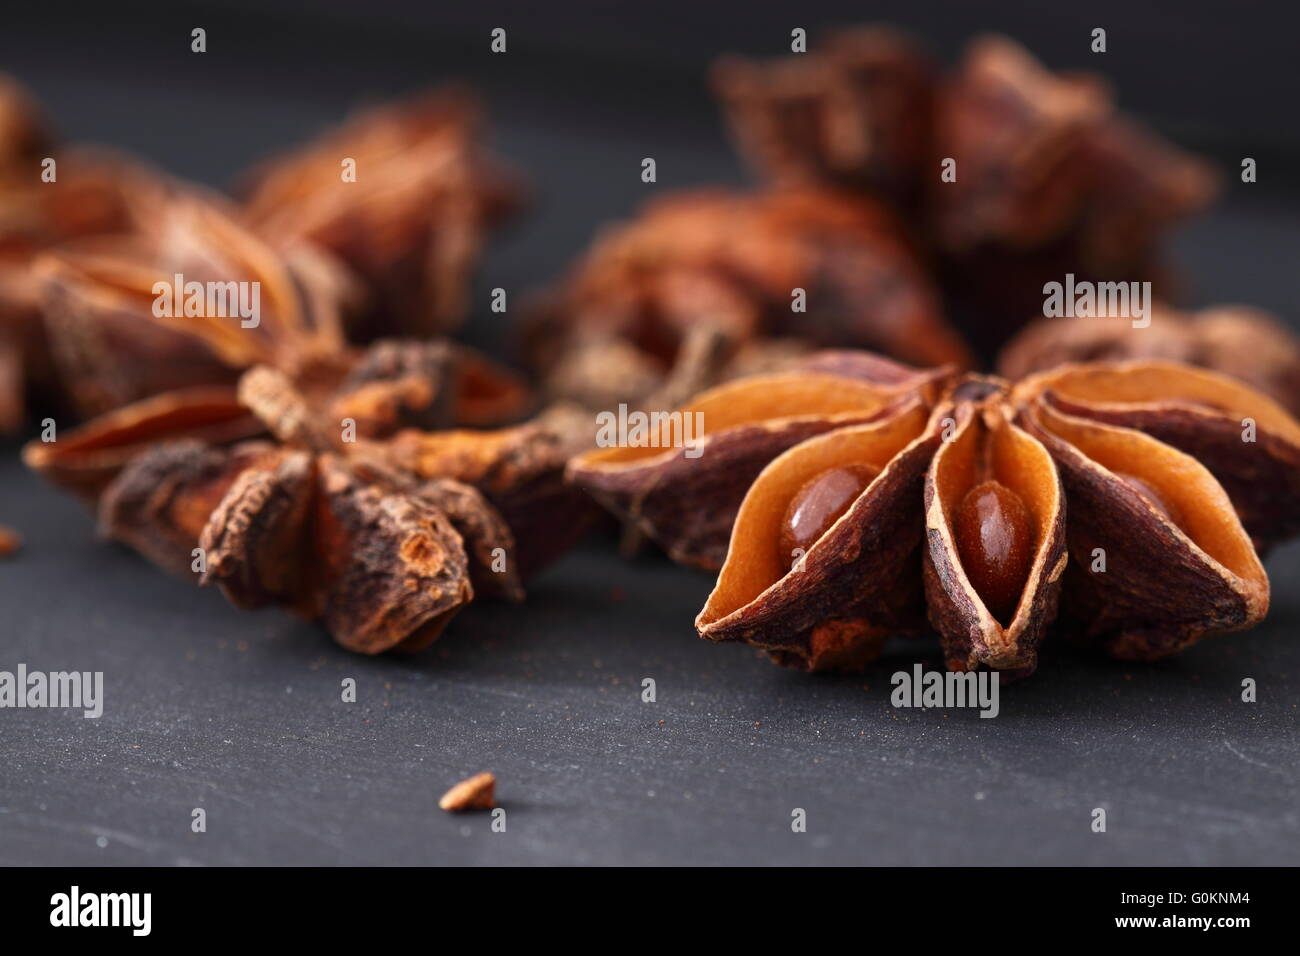 Star Anise on a black wood background - Stock Image